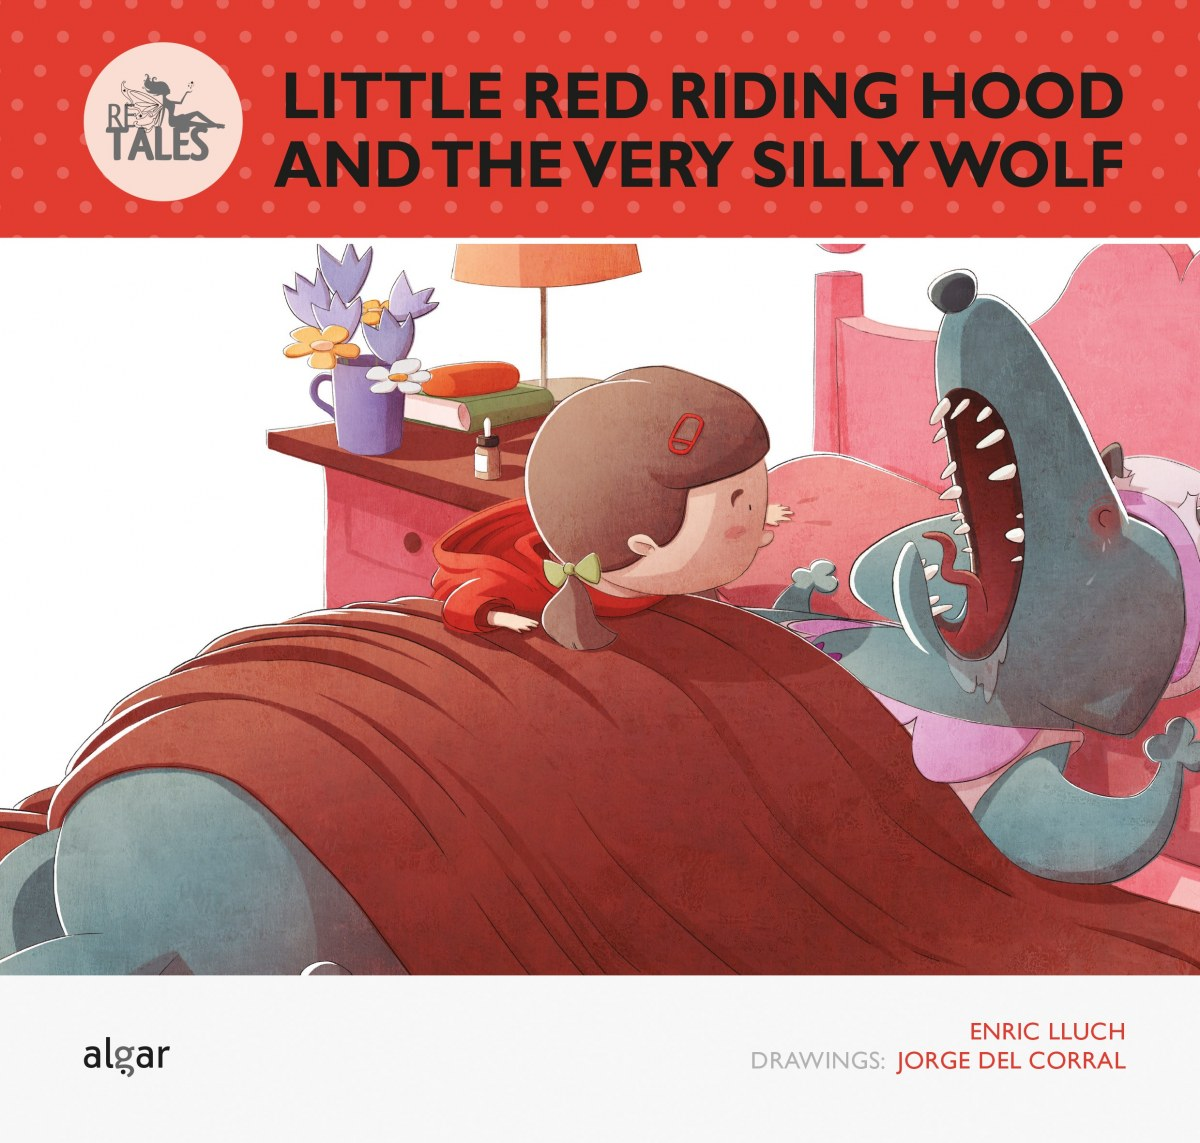 LITTLE RED RIDING HOOD AND THE VERY SILLY WOLF